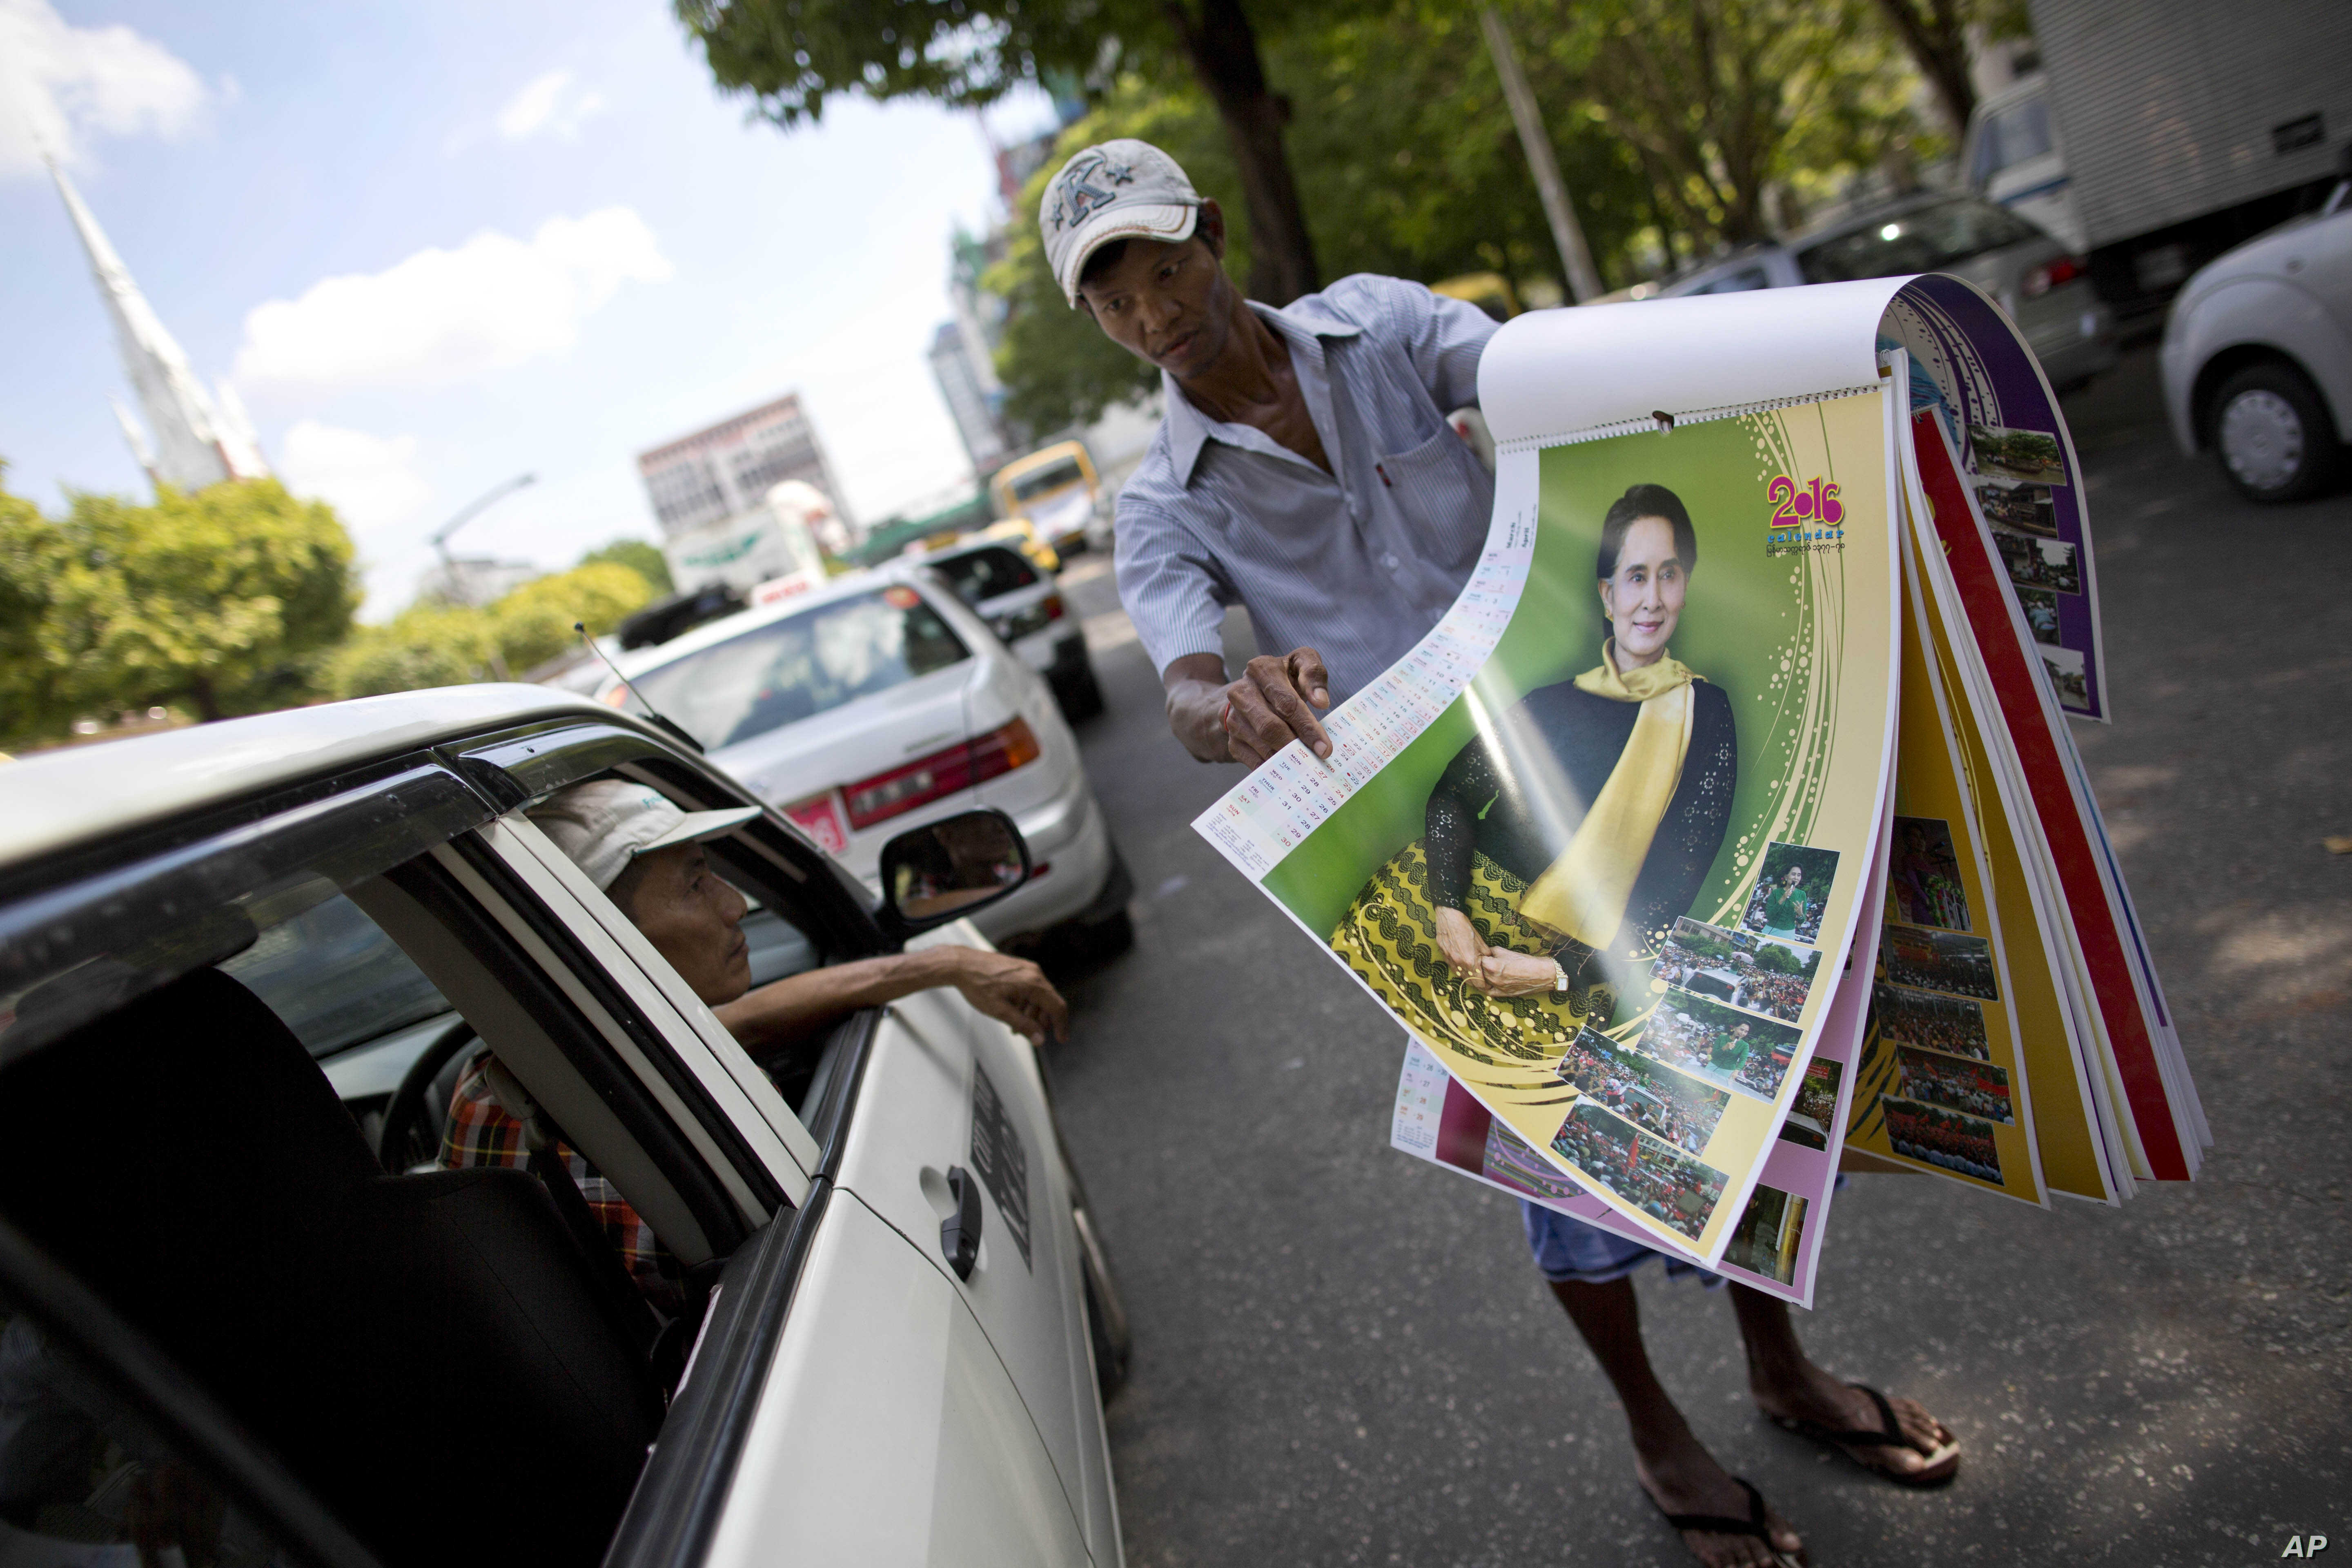 A street vender unfolds pages of a calendar featuring Myanmar's opposition leader Aung San Suu Kyi in a Yangon street, Myanmar, Nov. 12, 2015.